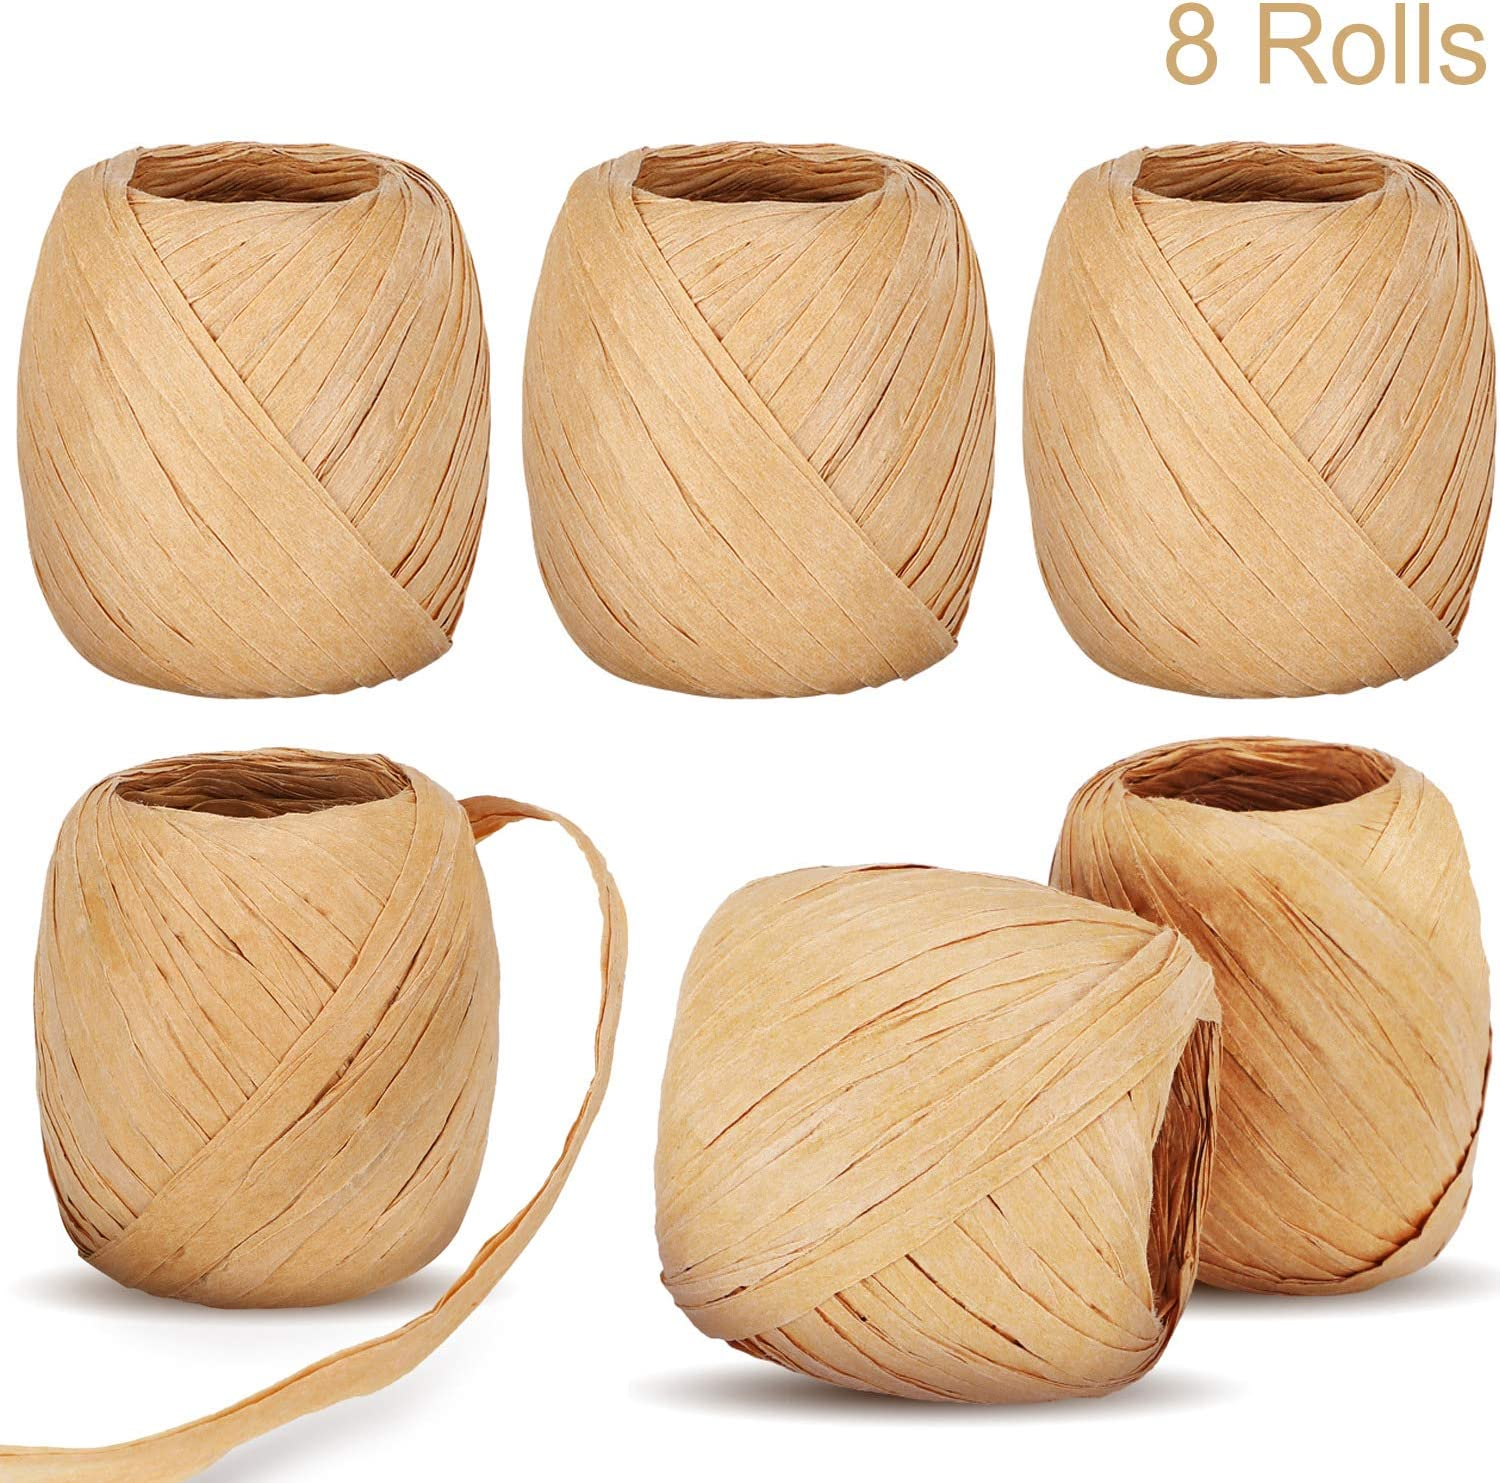 Color Set 3 Blulu 8 Rolls Raffia Paper Ribbons Packing Paper Twine Raffia Packing Rope for Holiday Gift DIY Craft Decoration by 175 Yards